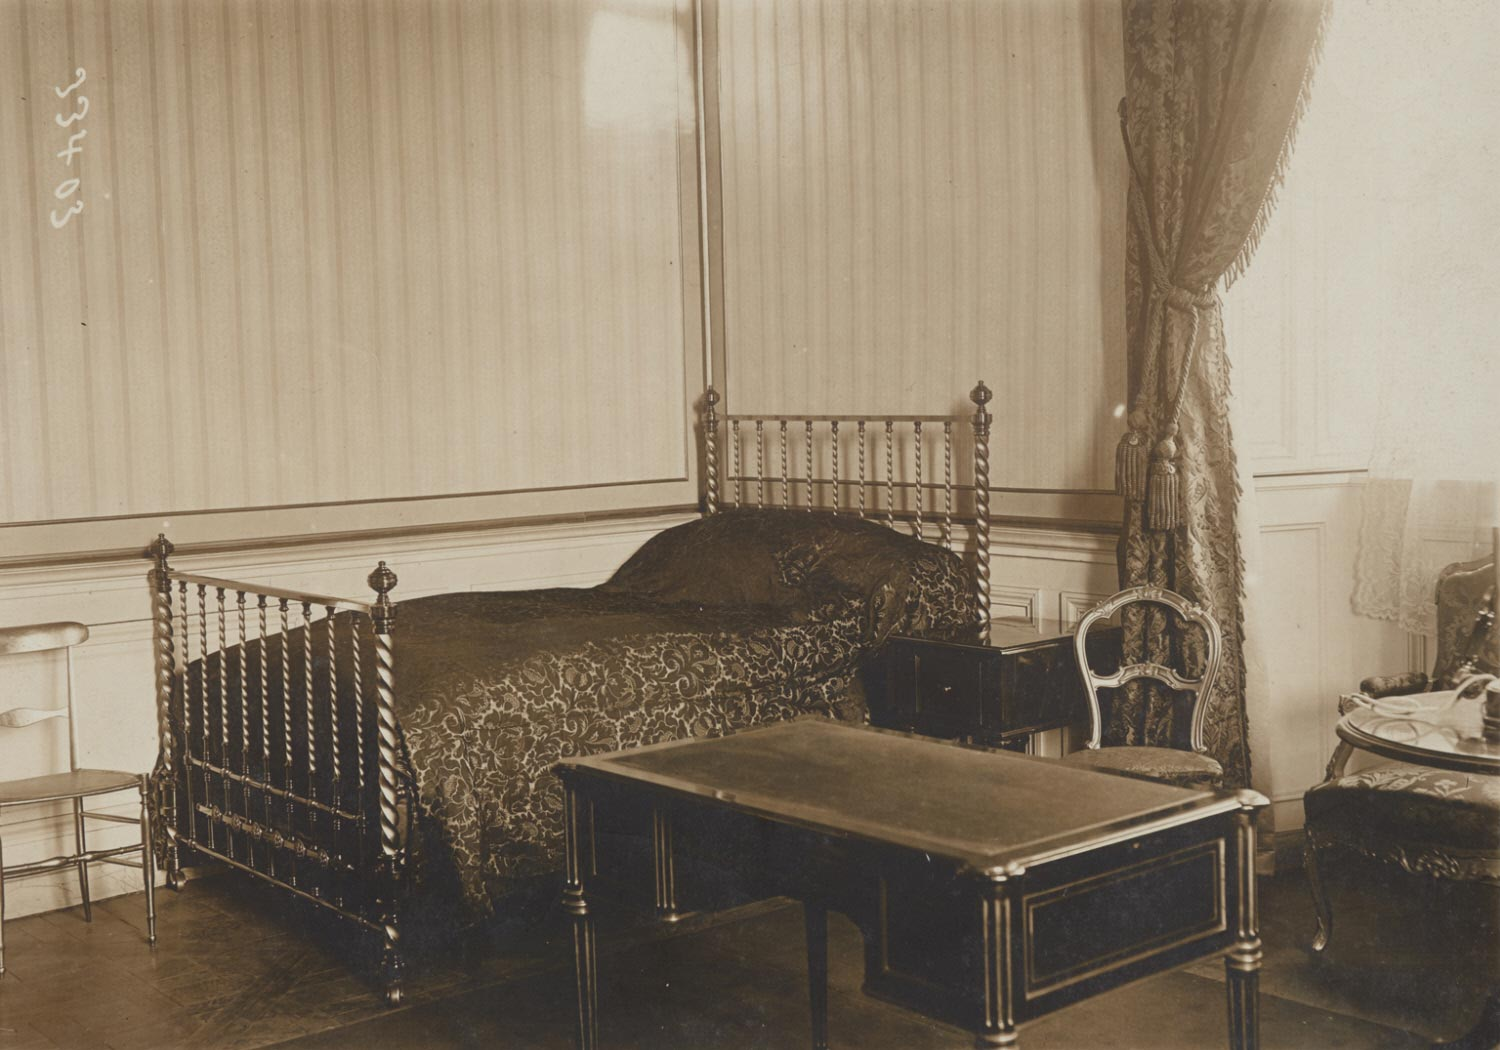 Before the Congress of Versailles: the Bedroom which the Future President Might Use before His Return to Paris the Day after the Election